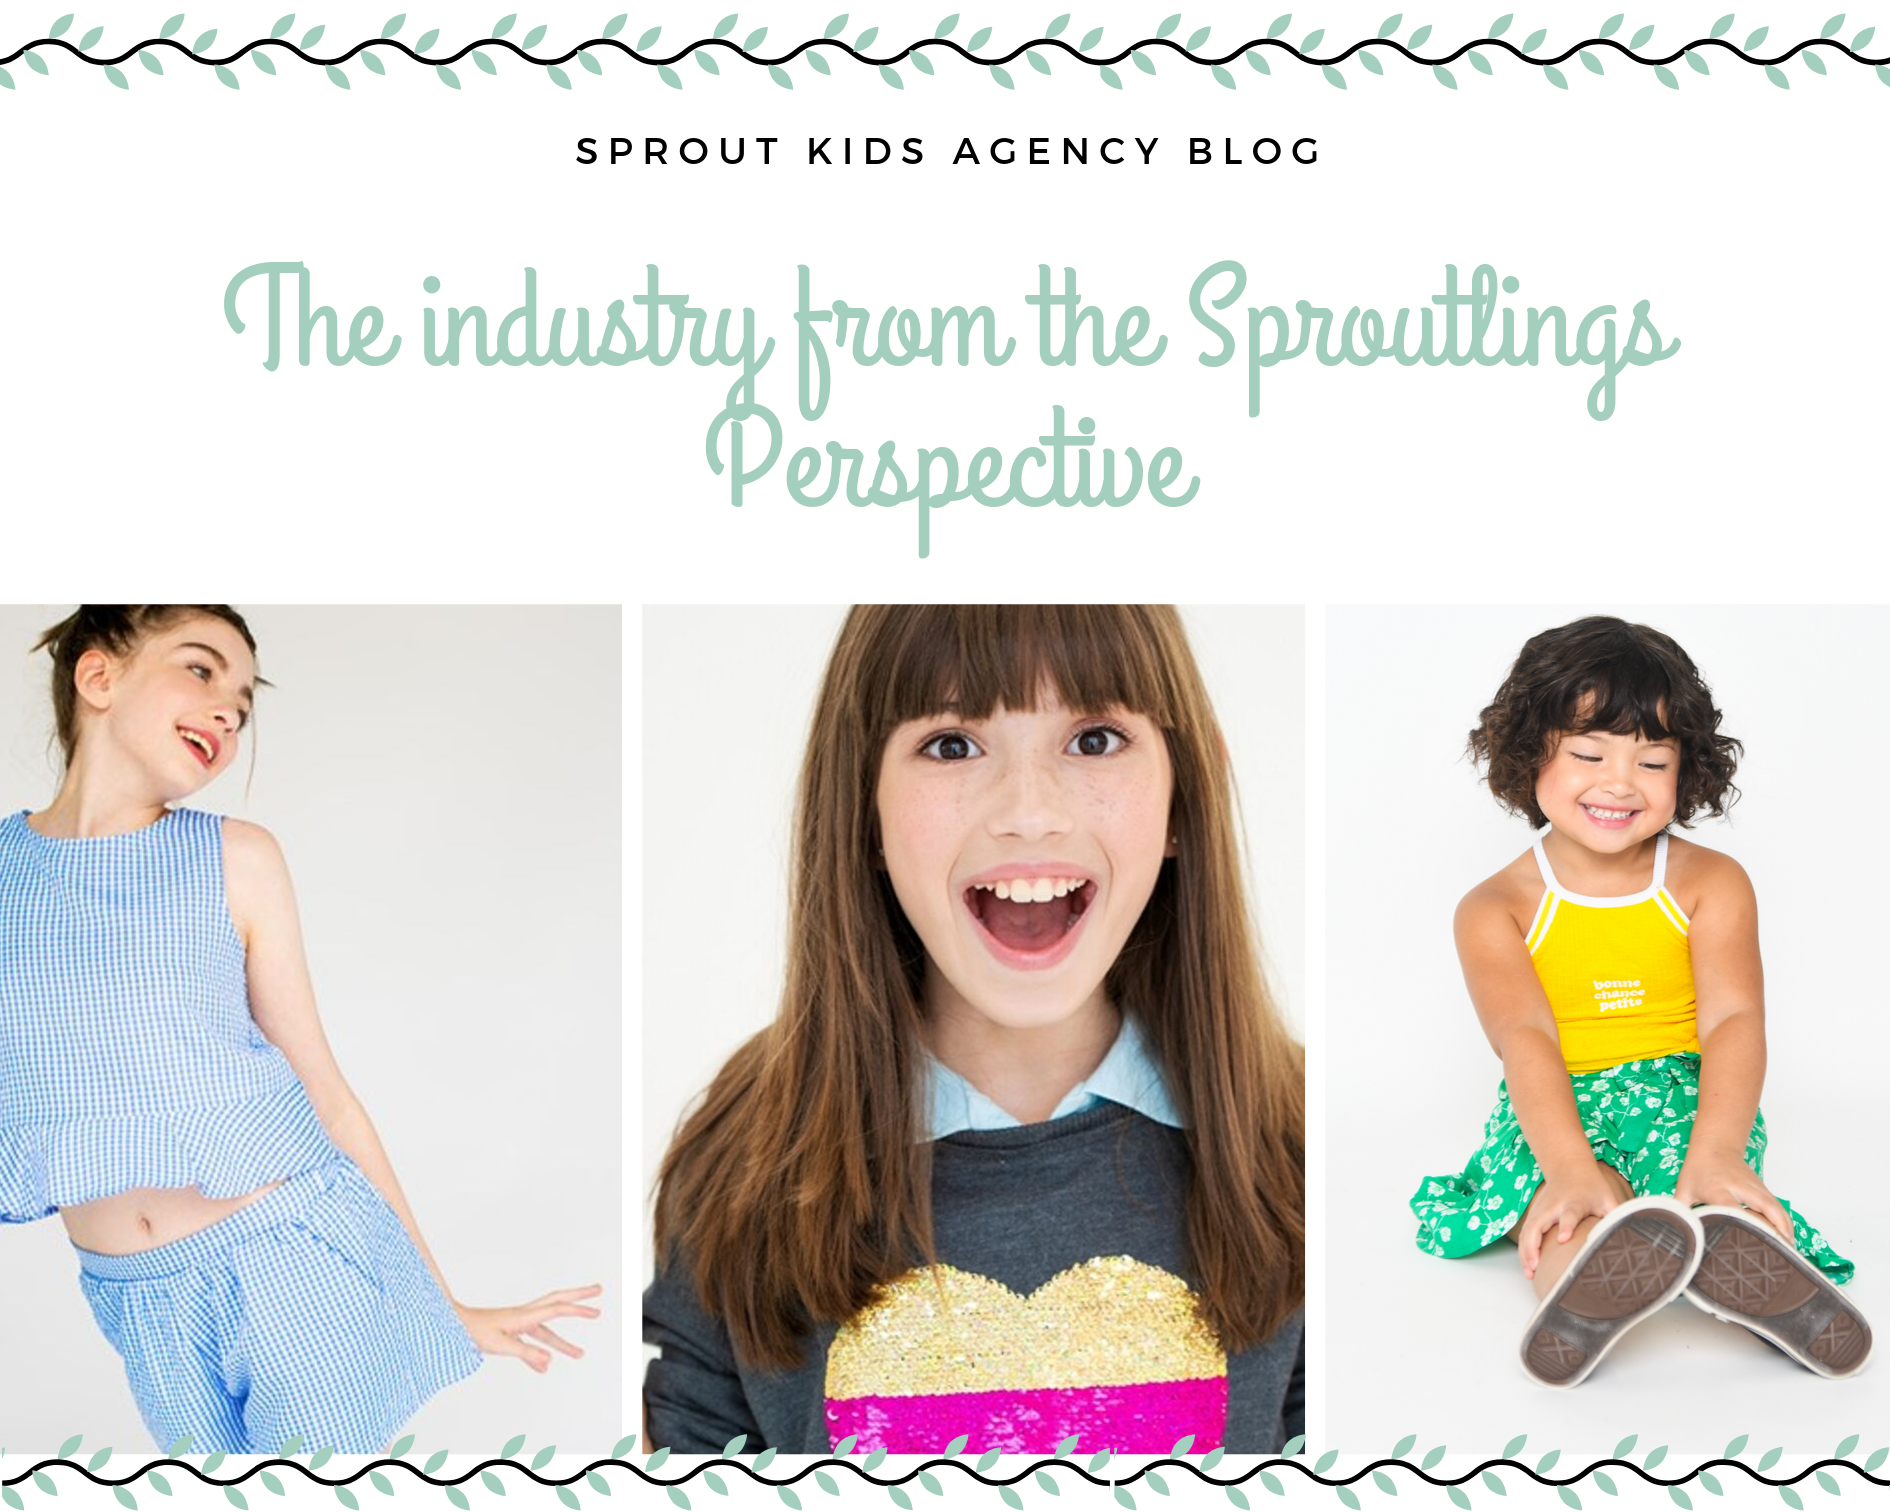 The industry : from the Sproutlings Perspective